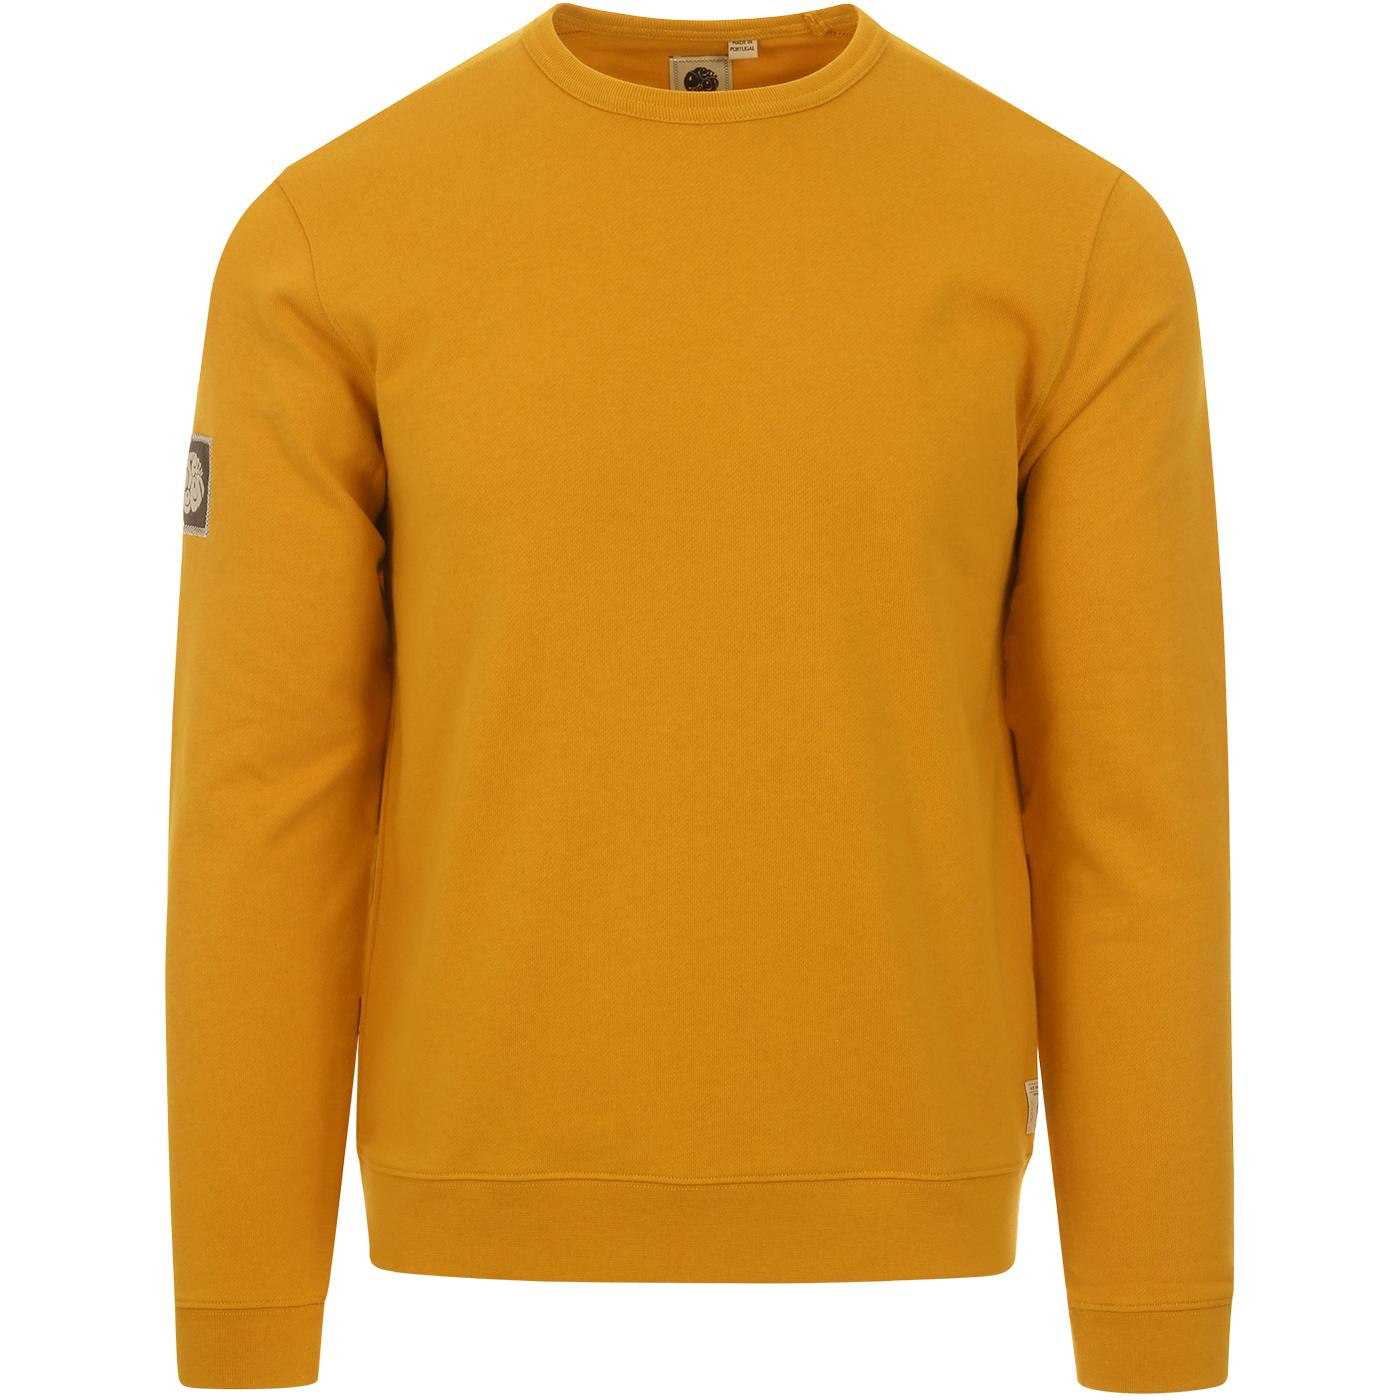 PRETTY GREEN Retro 90s Crew Sweatshirt (Orange)